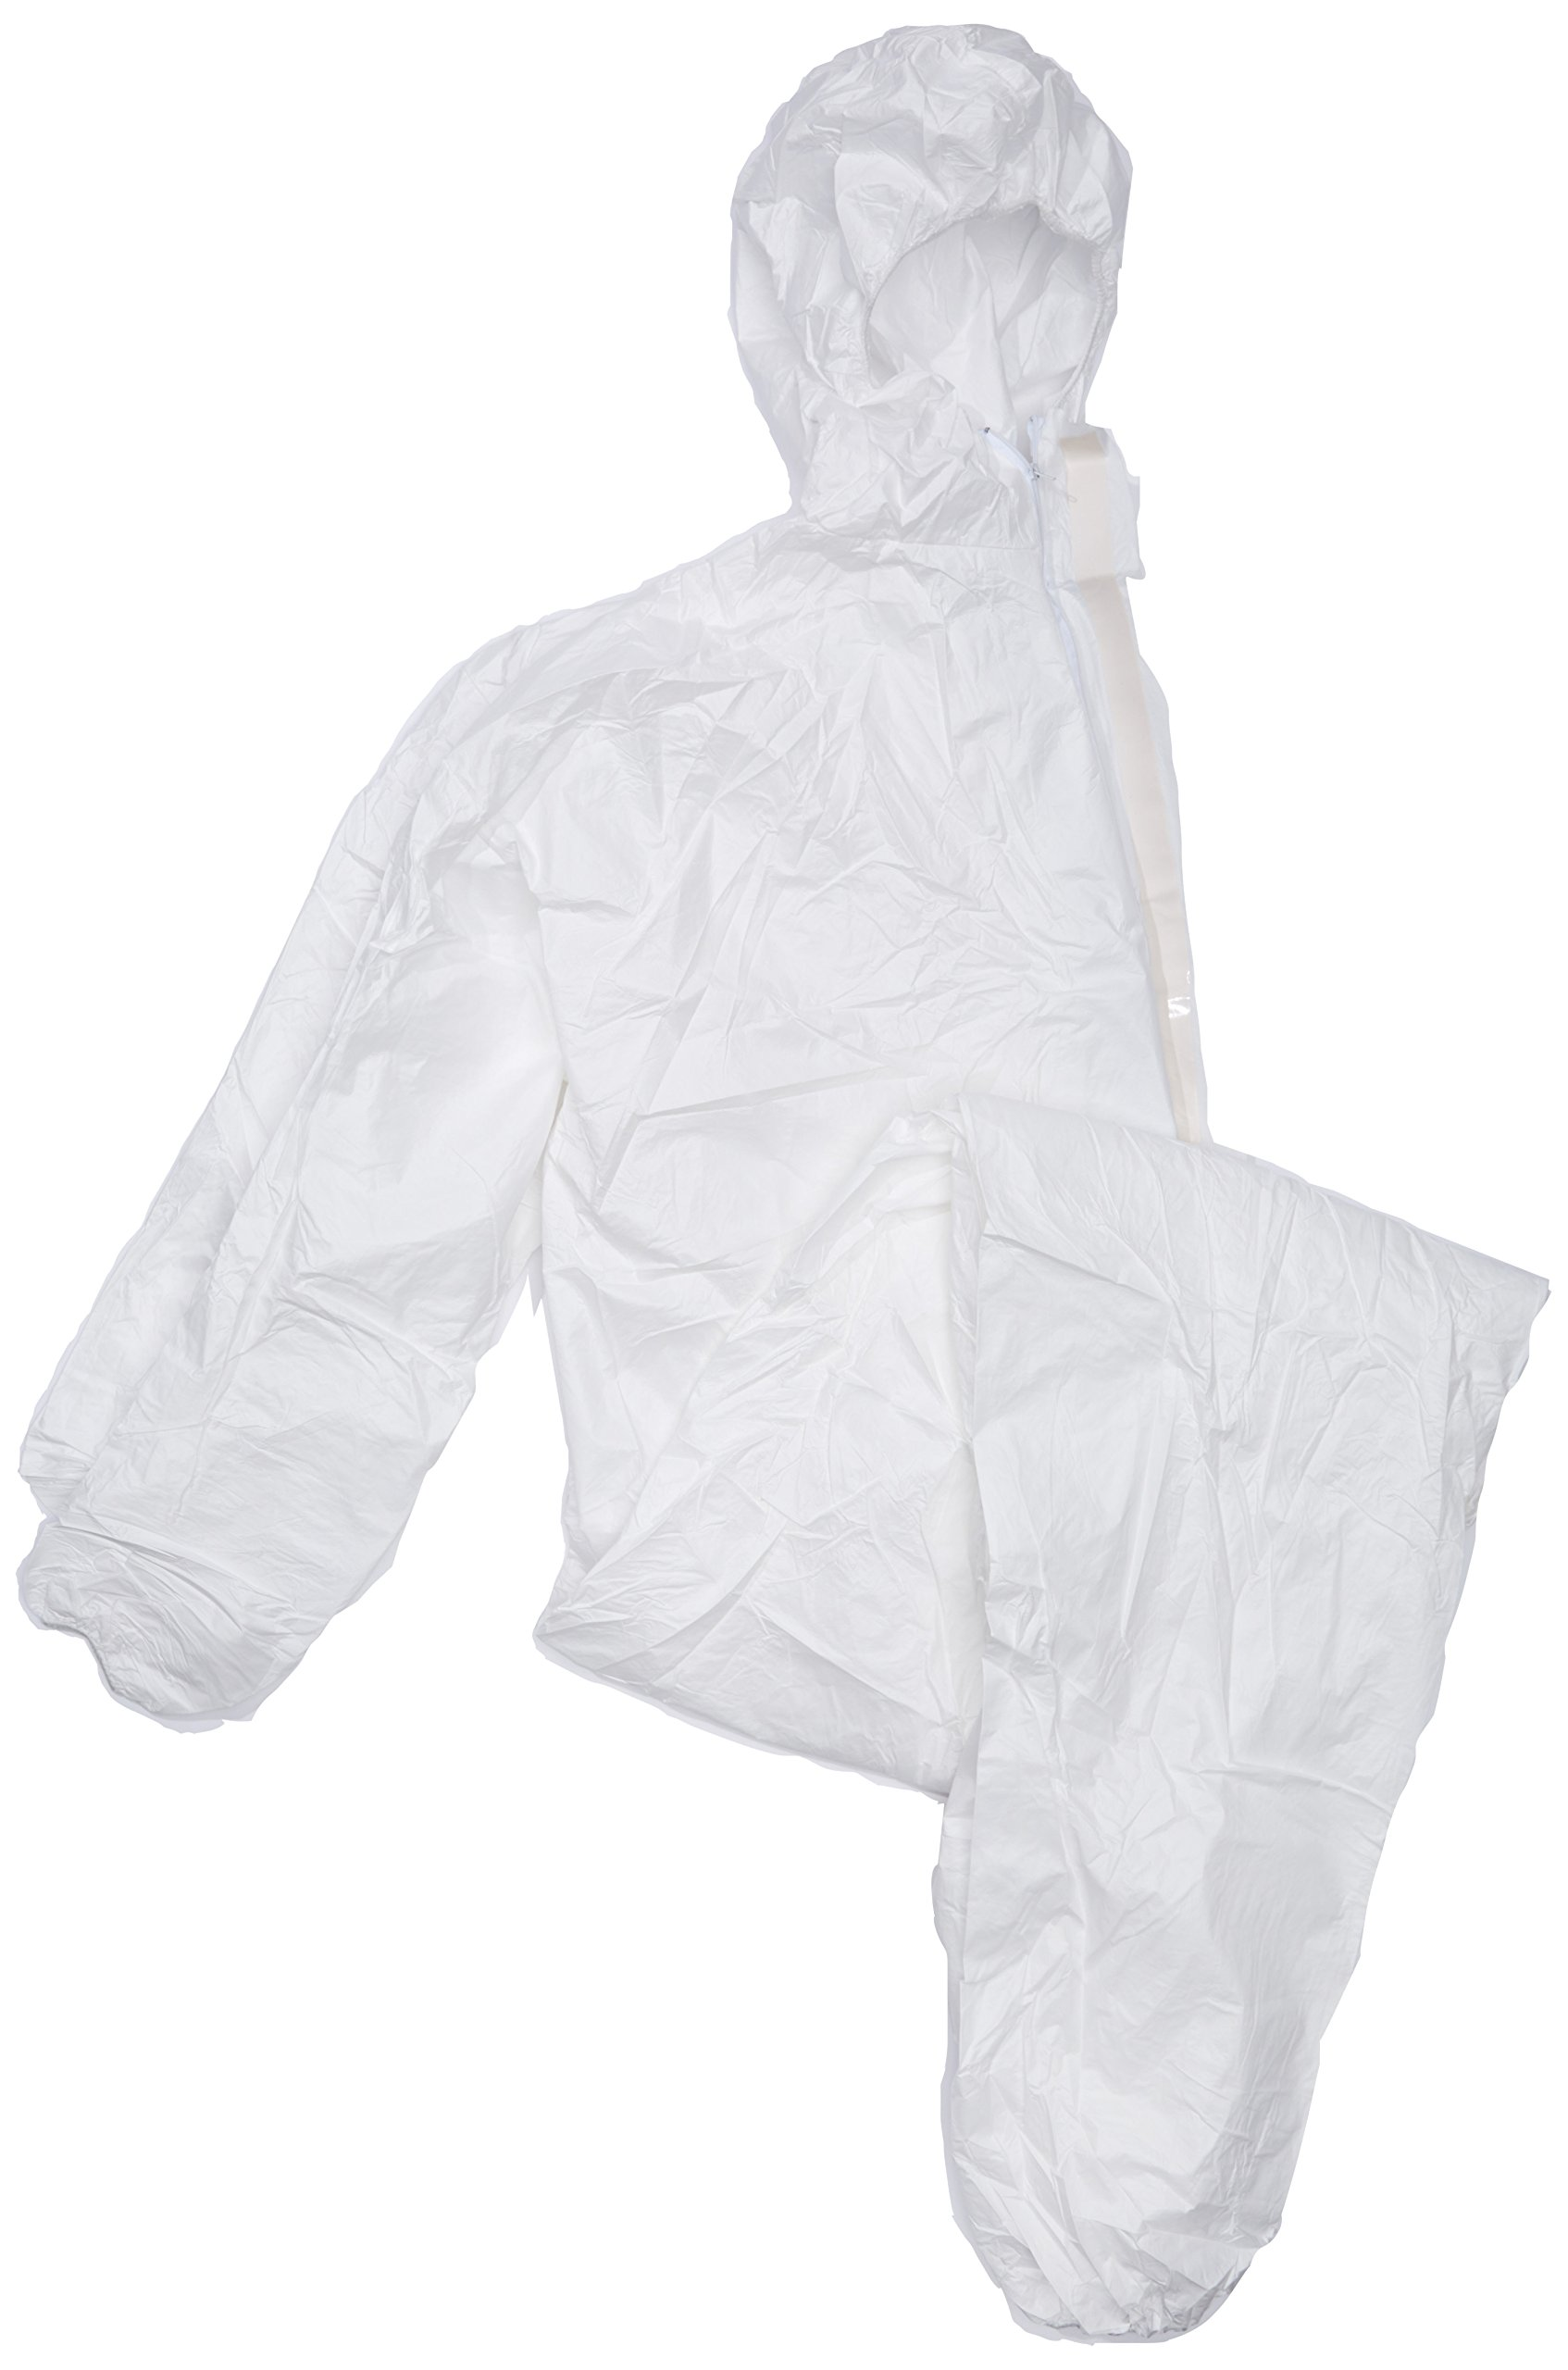 Florida Coast 44-1400 Virus & Disease Protective wear Coveralls, Extra Large, White by Florida Coast